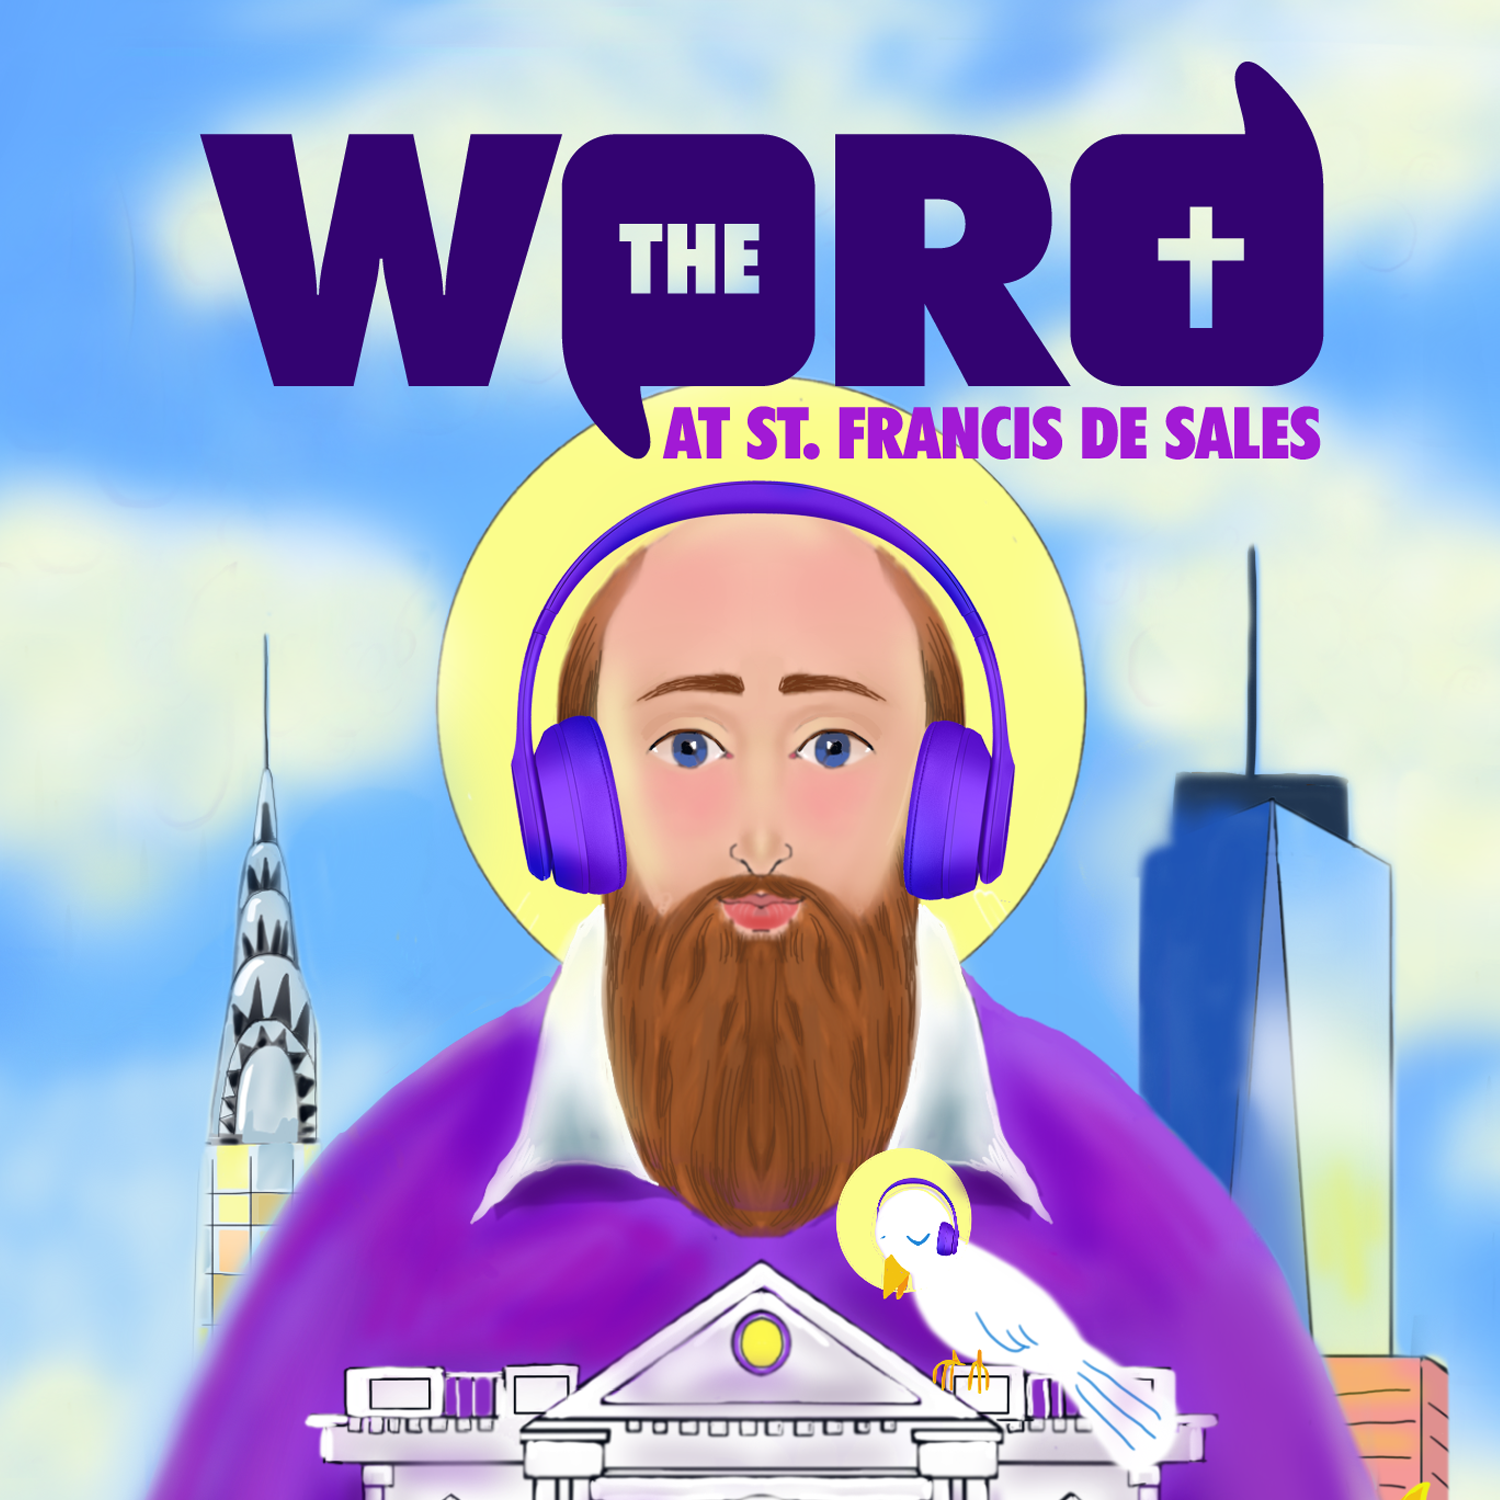 Artwork for What's The Word at St. Francis de Sales?